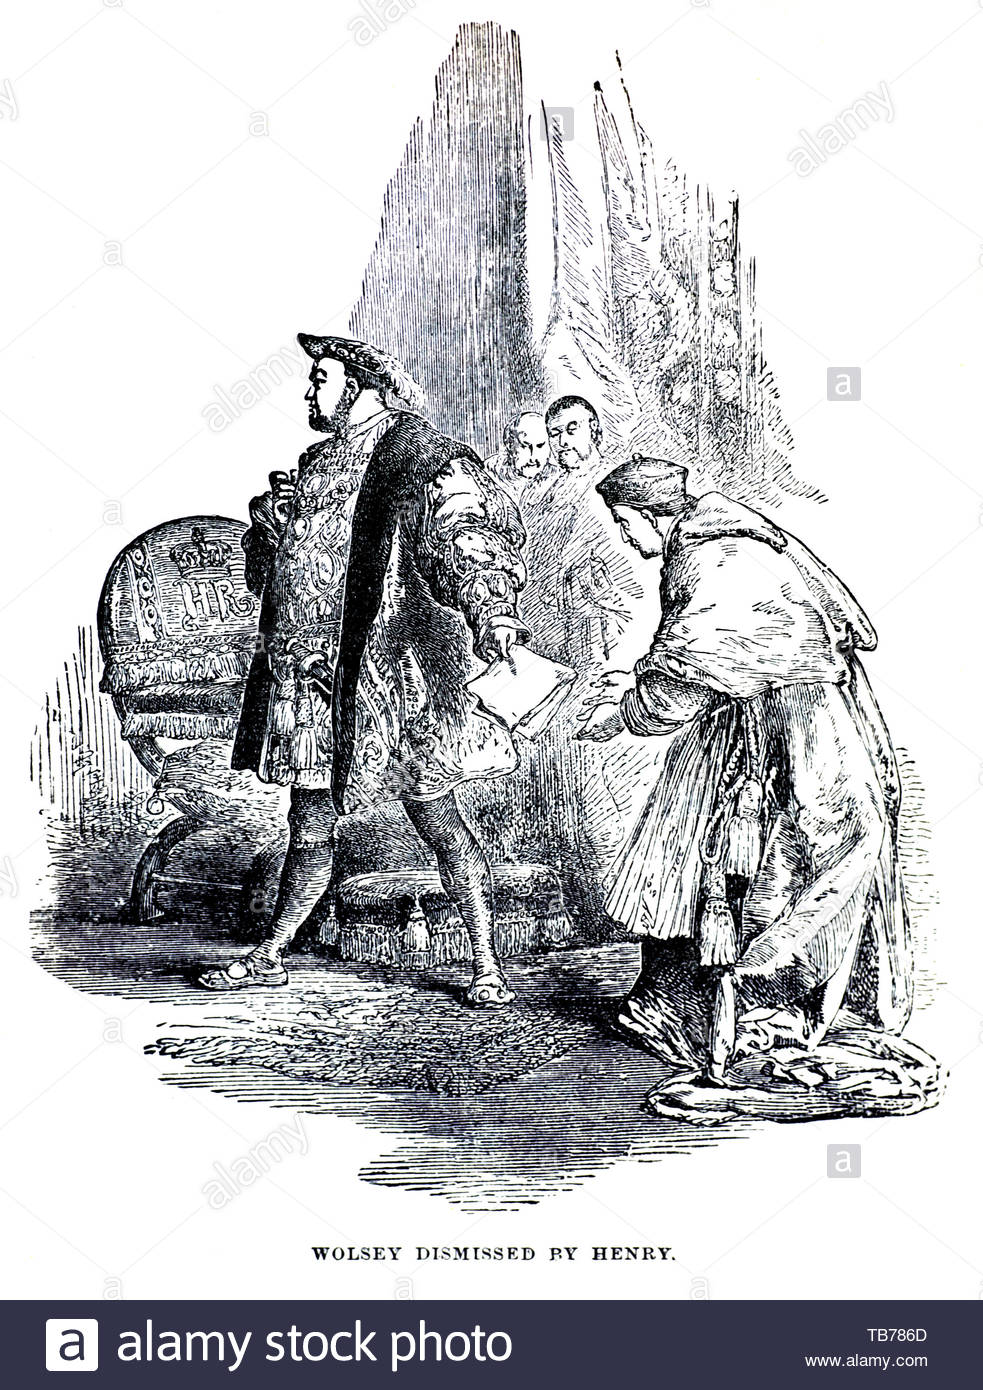 Cardinal Wolsey being dismissed from the Lord Chancellor of England post by Henry VIII in 1529 - Stock Image